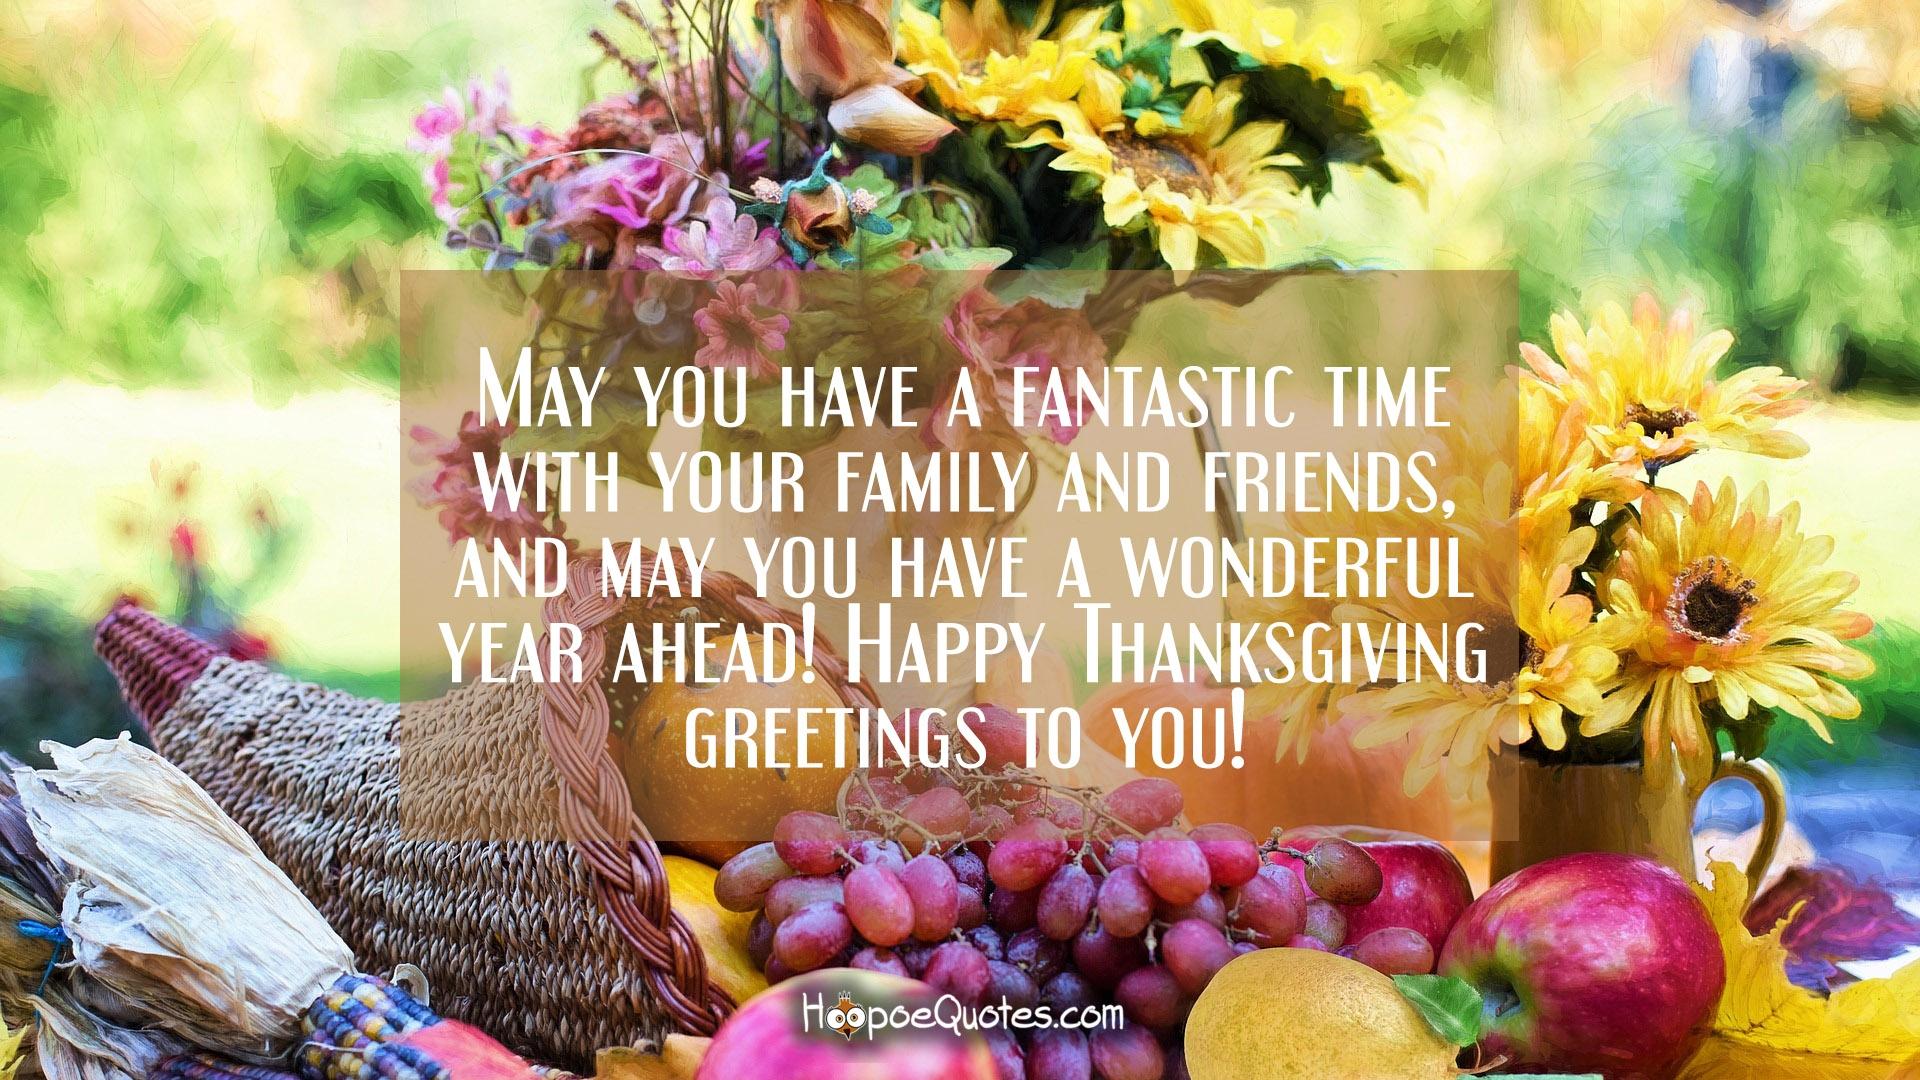 May You Have A Fantastic Time With Your Family And Friends